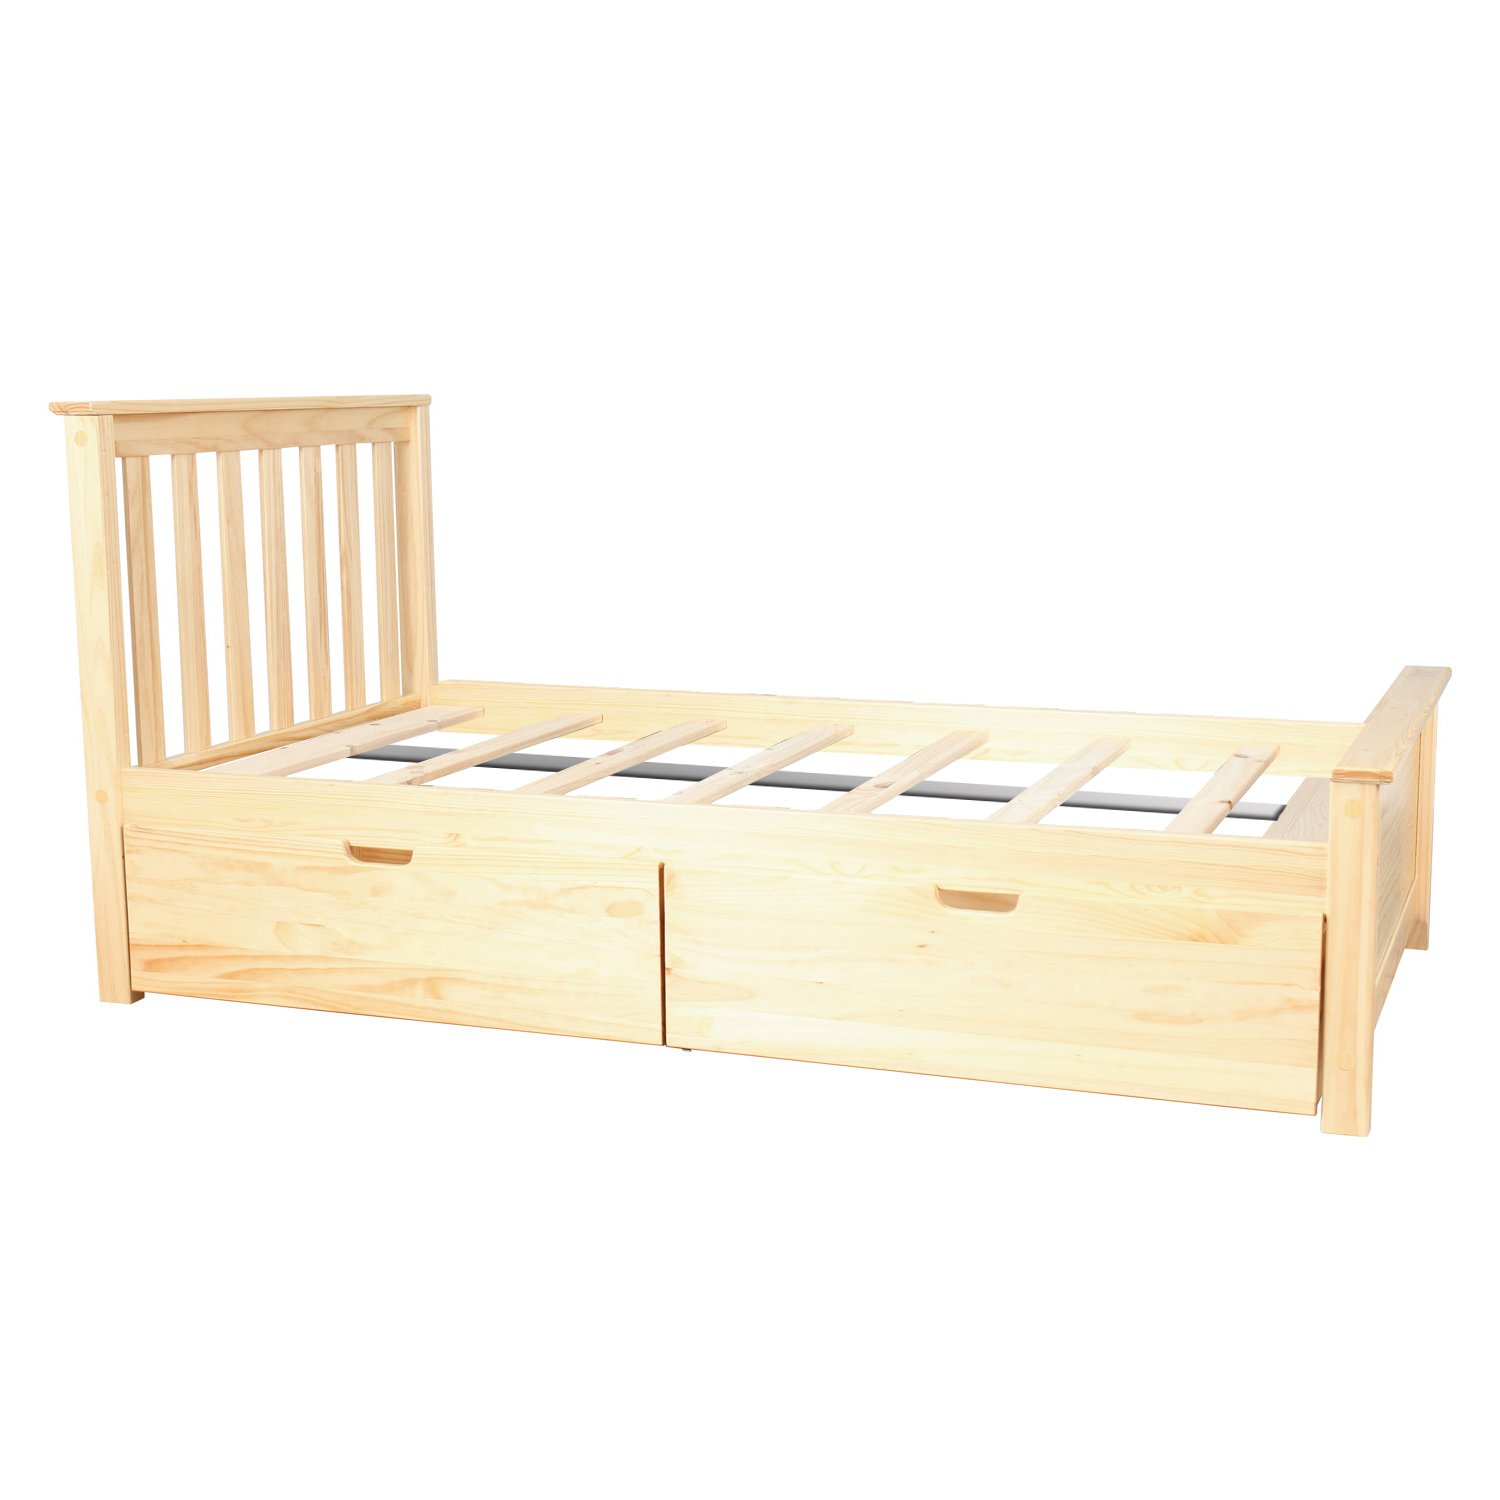 Max & Lily Solid Wood Twin-Size Bed with Under Bed Storage Drawers, Natural